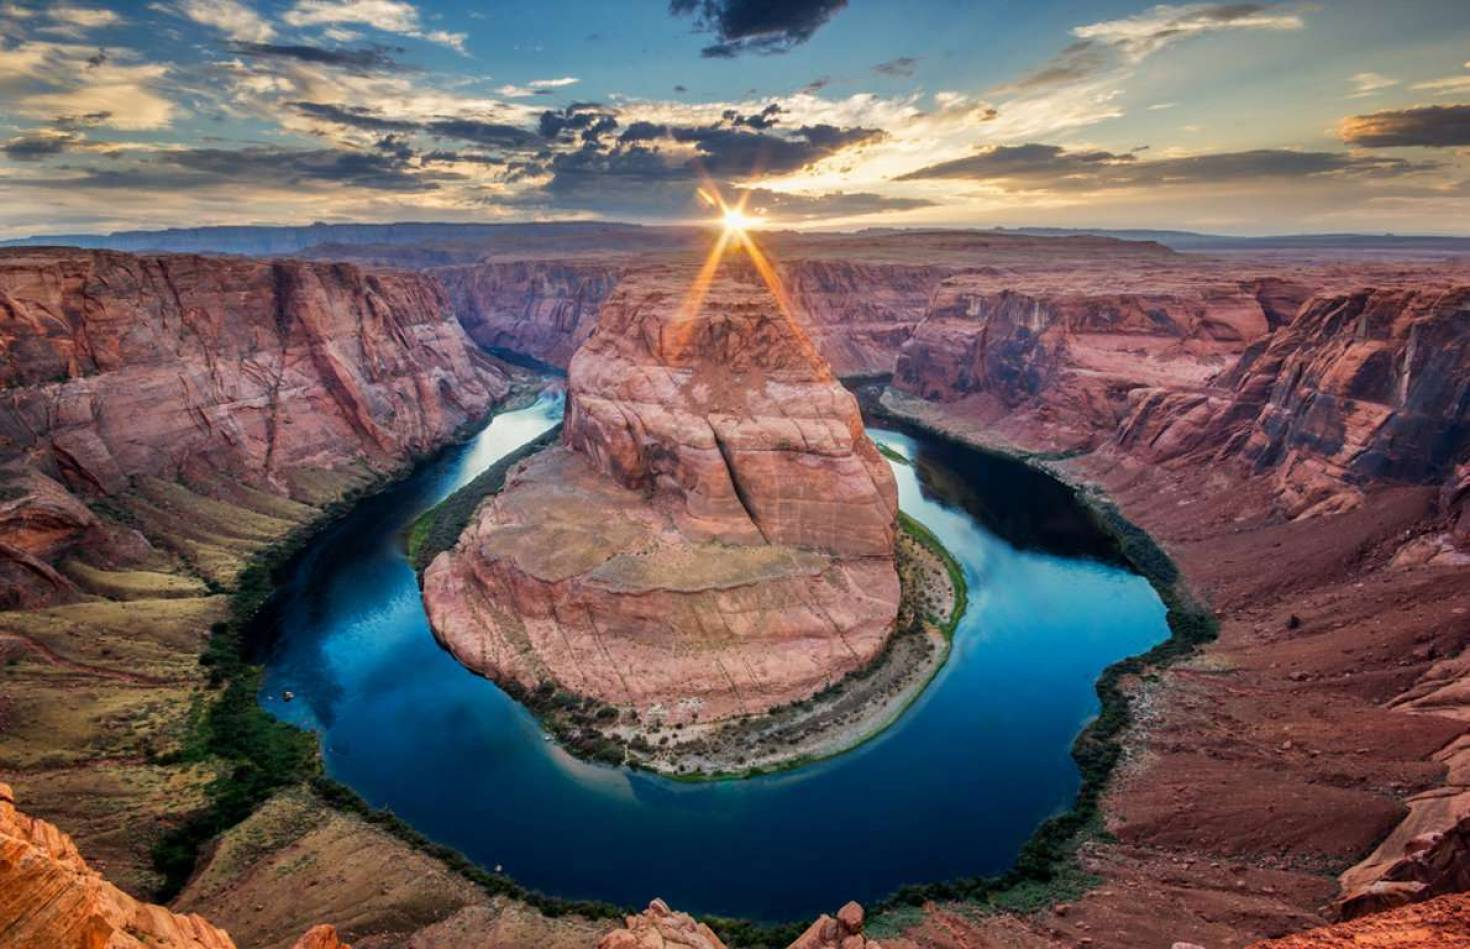 Horseshoe Bend in Grand Canyon